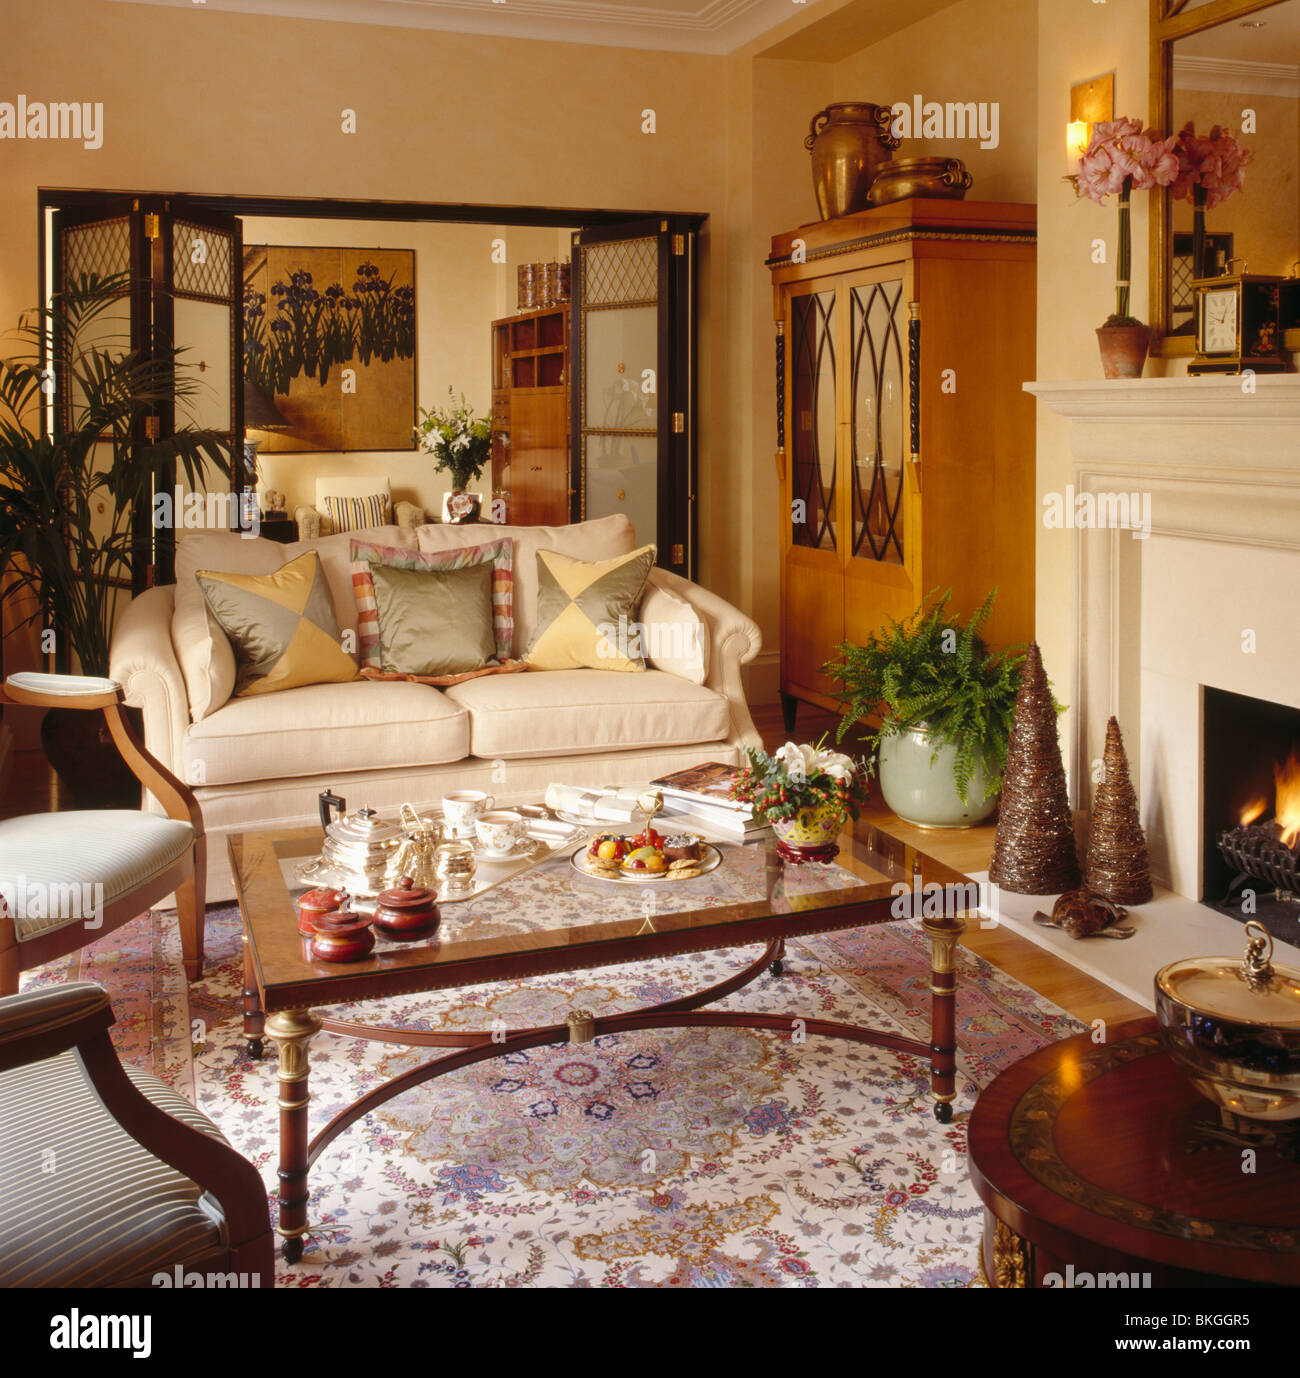 tea set on coffee table in front of fireplace in townhouse living